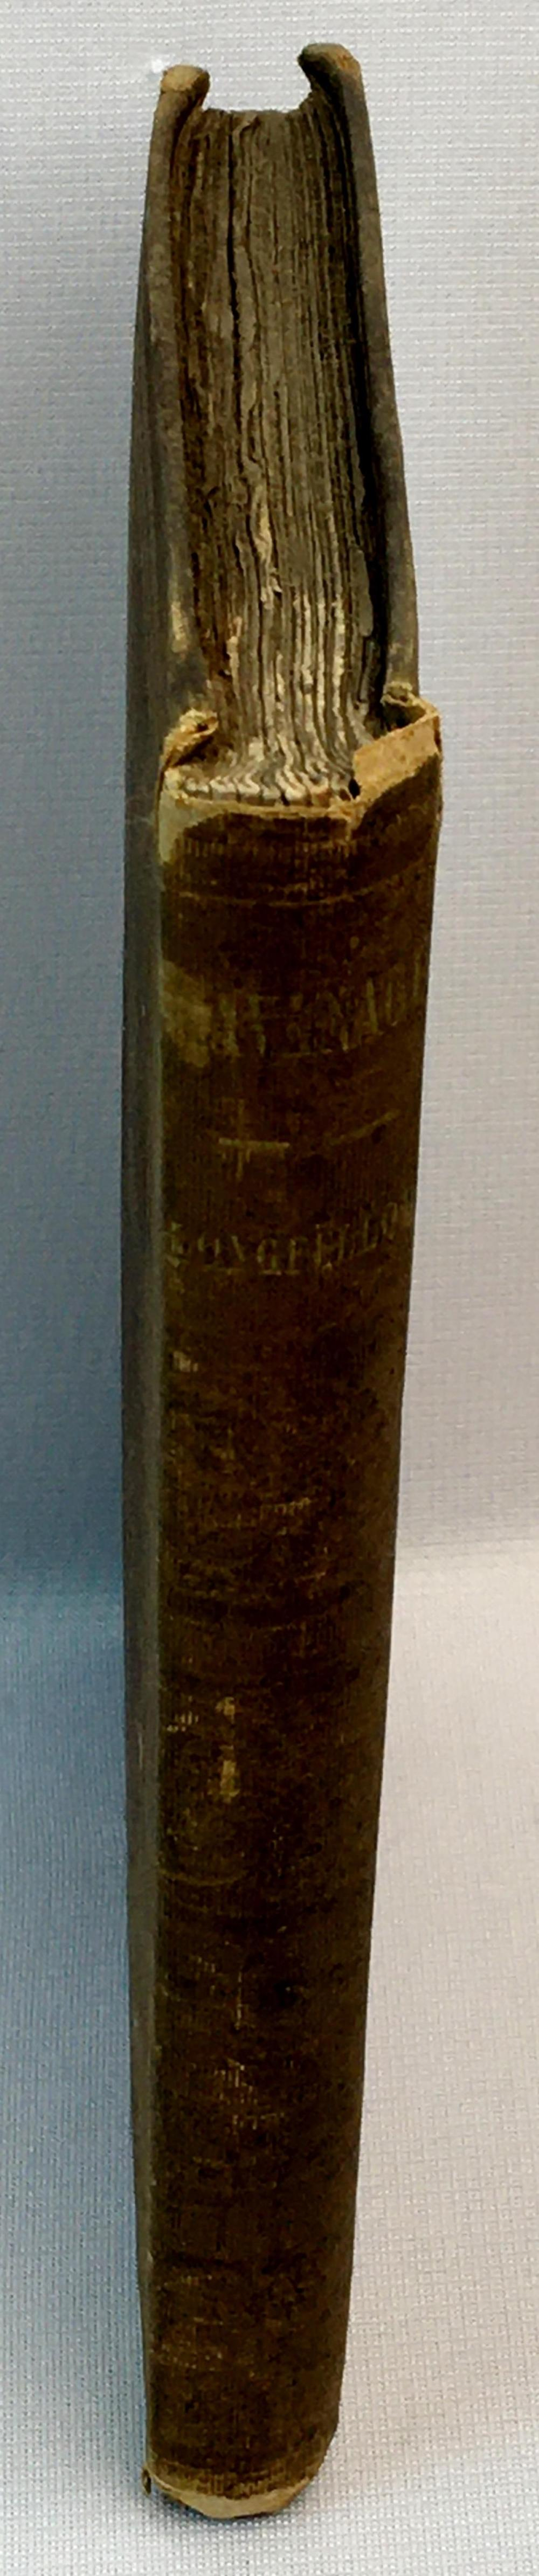 1849 Kavanaugh: A Tale by Henry Wadsworth Longfellow FIRST EDITION